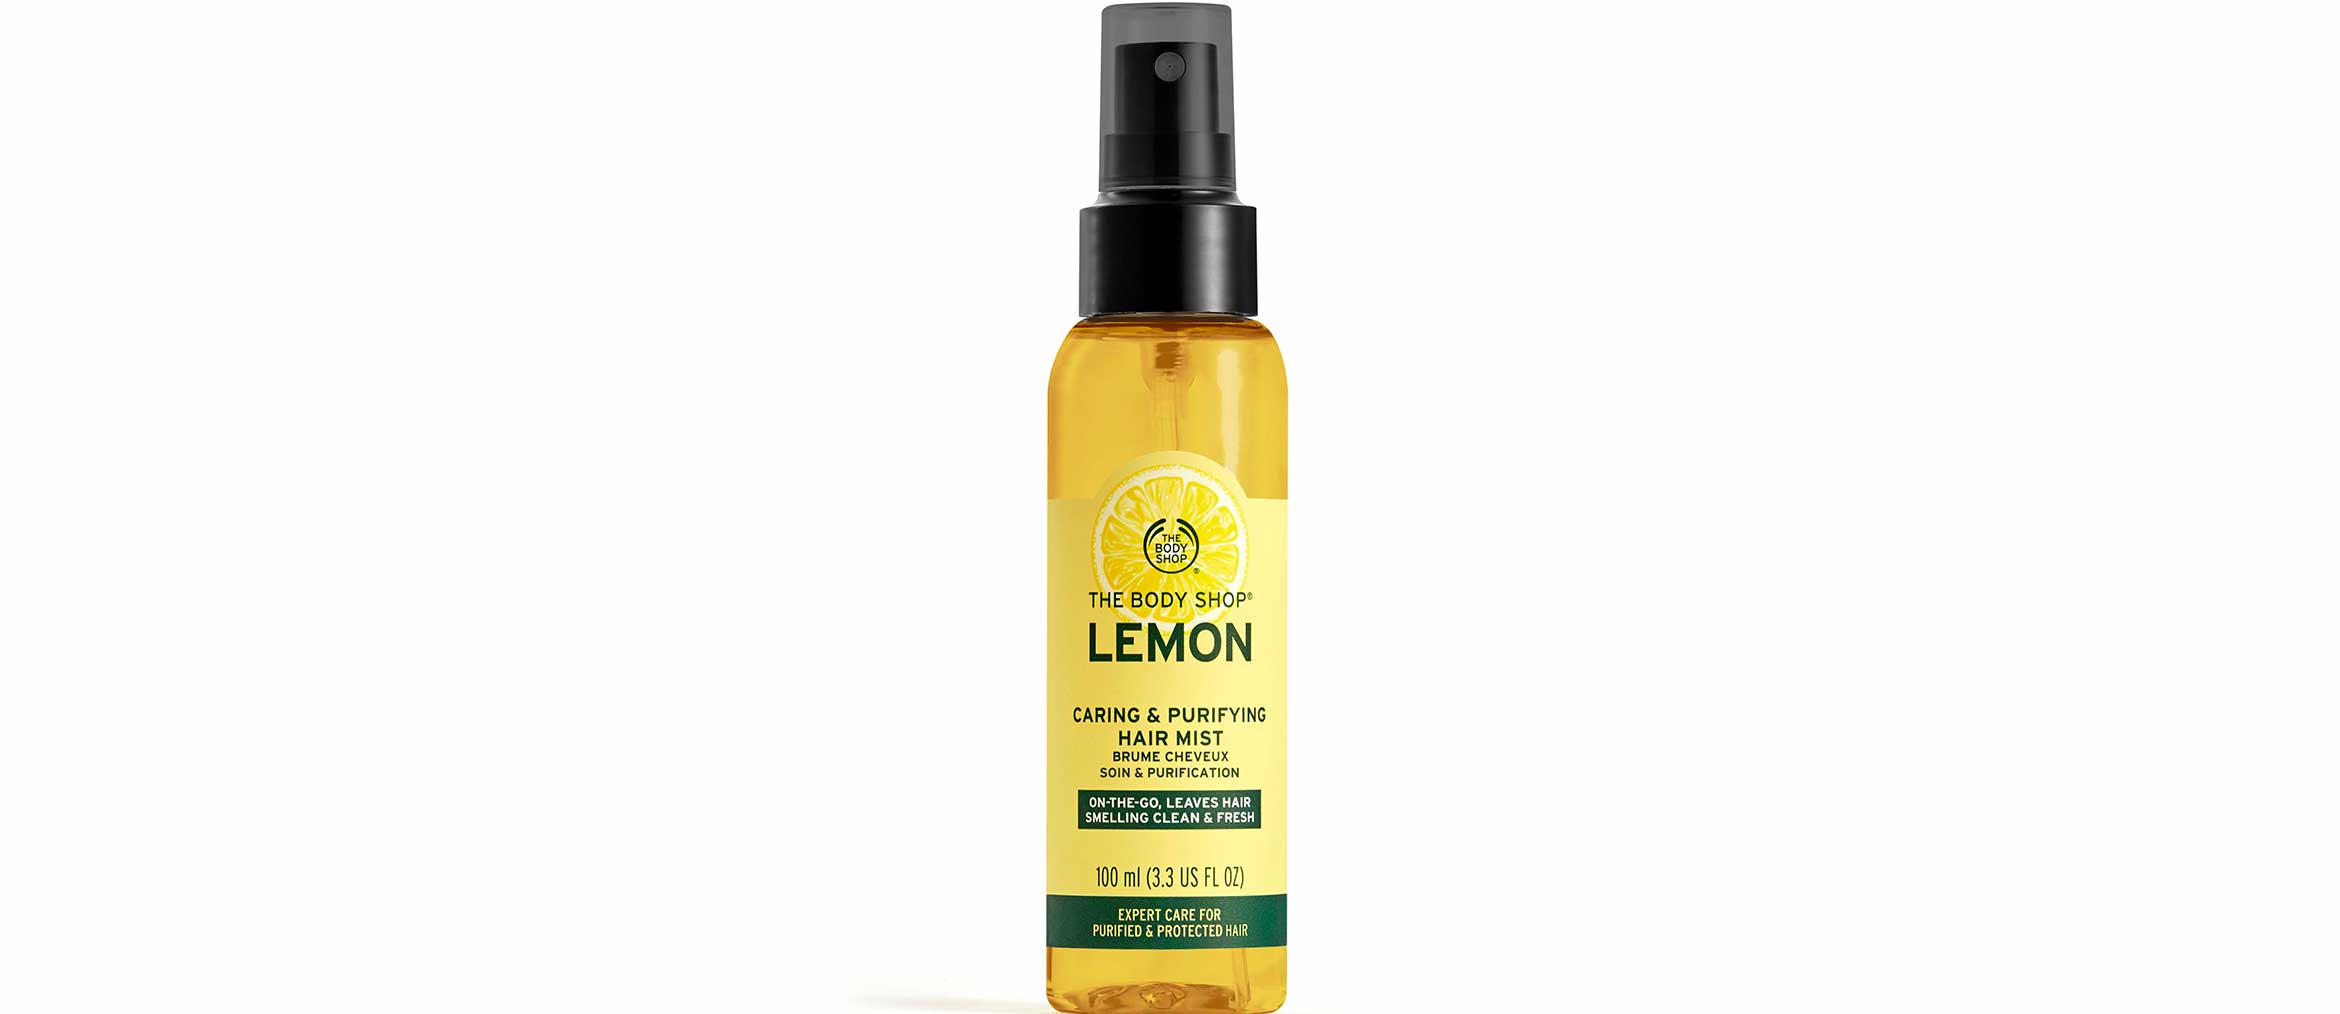 the body shop lemon caring & purifying hair mist